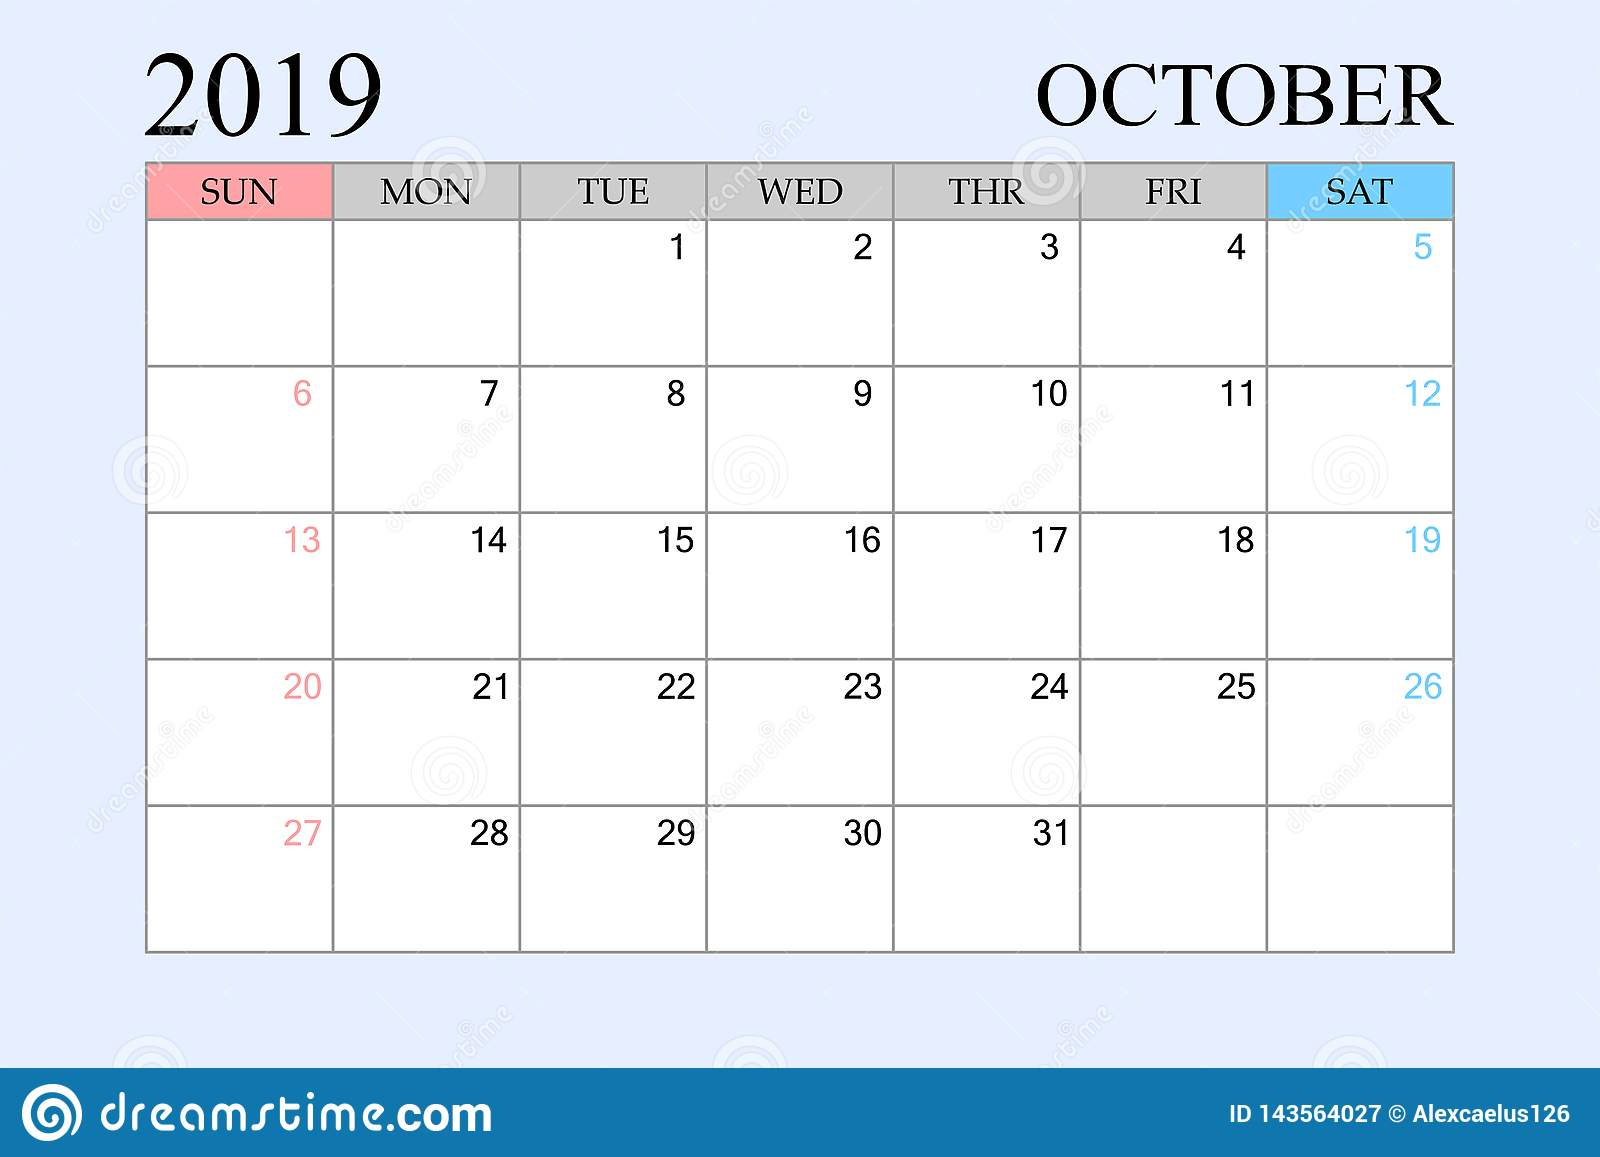 2019 Calendar, October, Schedule Planner, Organizer, Weeks